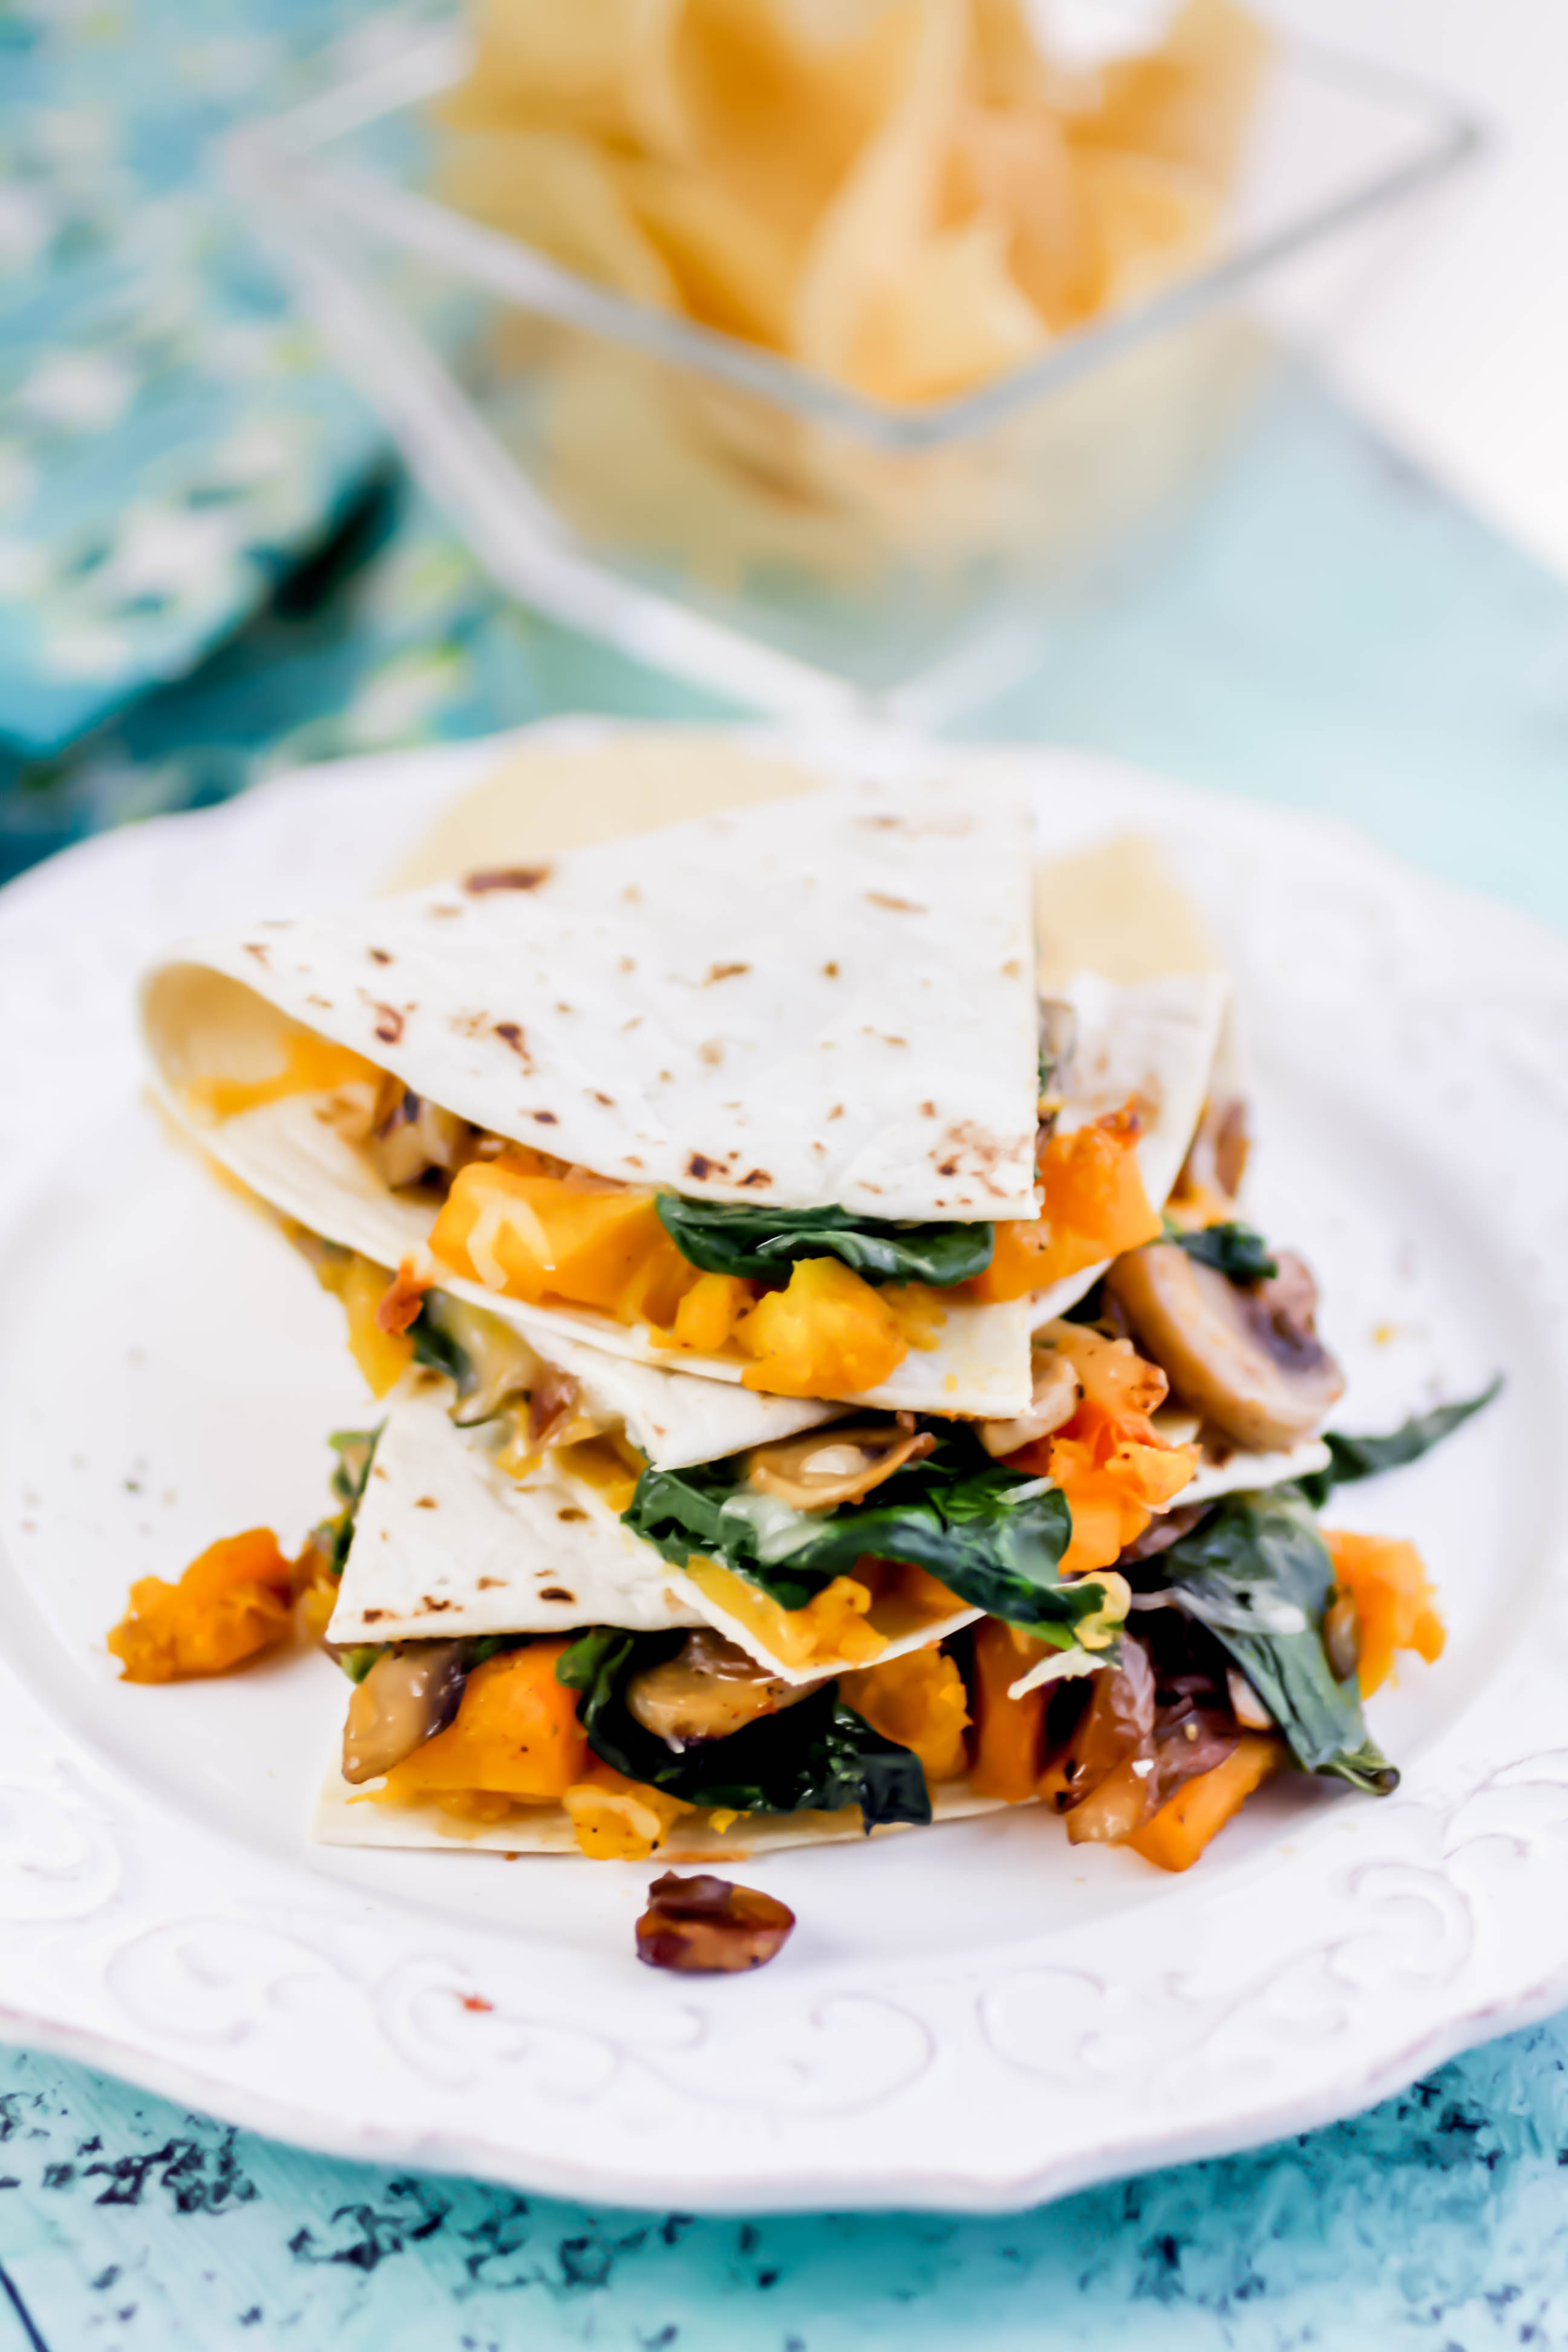 Butternut Squash, Mushroom, Onion, and Spinach Quesadillas are filling and delightful for any dinnertime menu! Butternut Squash, Mushroom, Onion, and Spinach Quesadillas are loaded with great ingredients for a tasty meal!